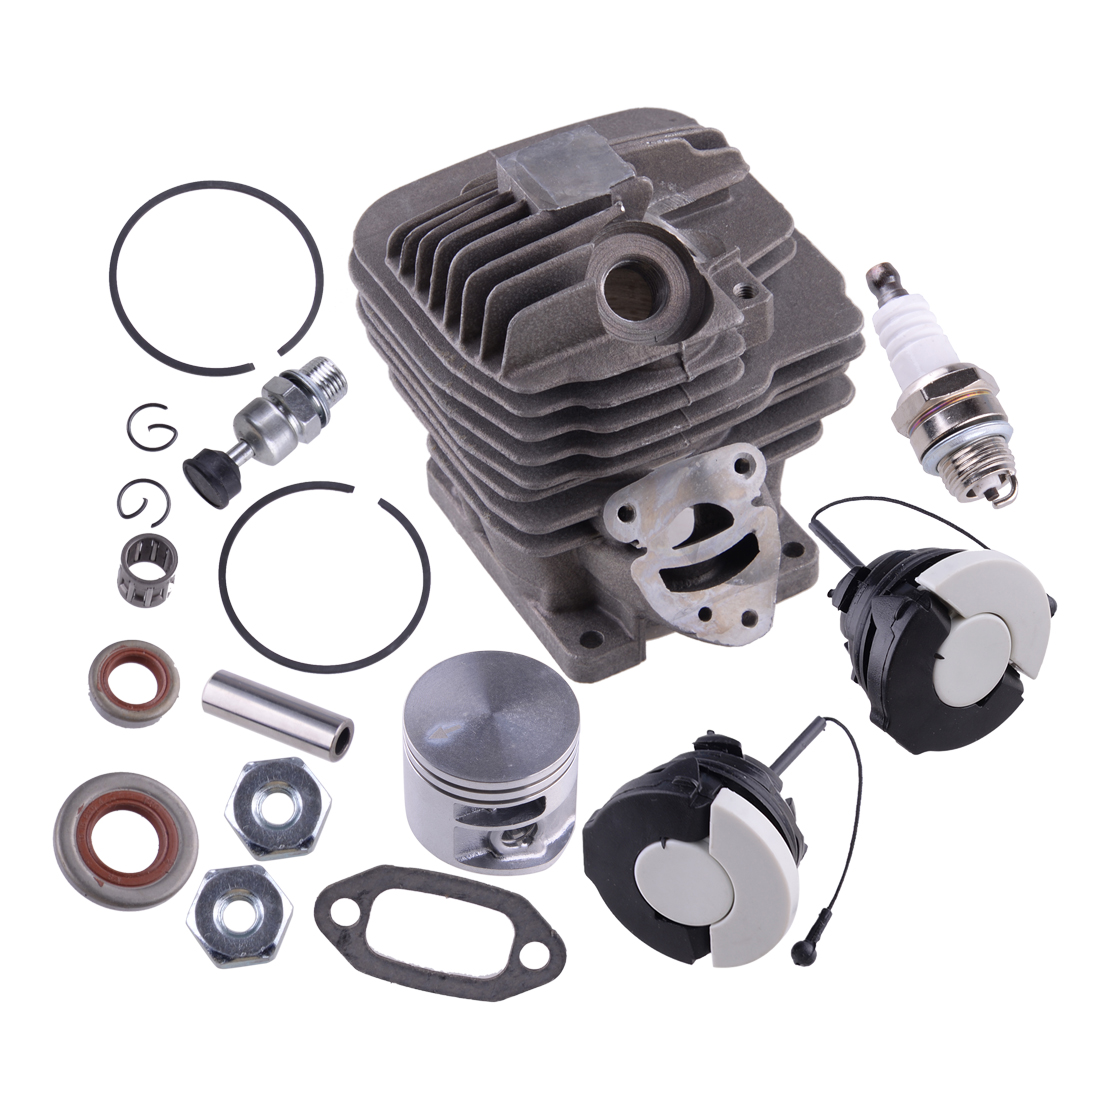 44 7mm Cylinder Piston Carb Kit fit for Stihl MS261 MS261C Chainsaw Oil Seal Cap 11410201200